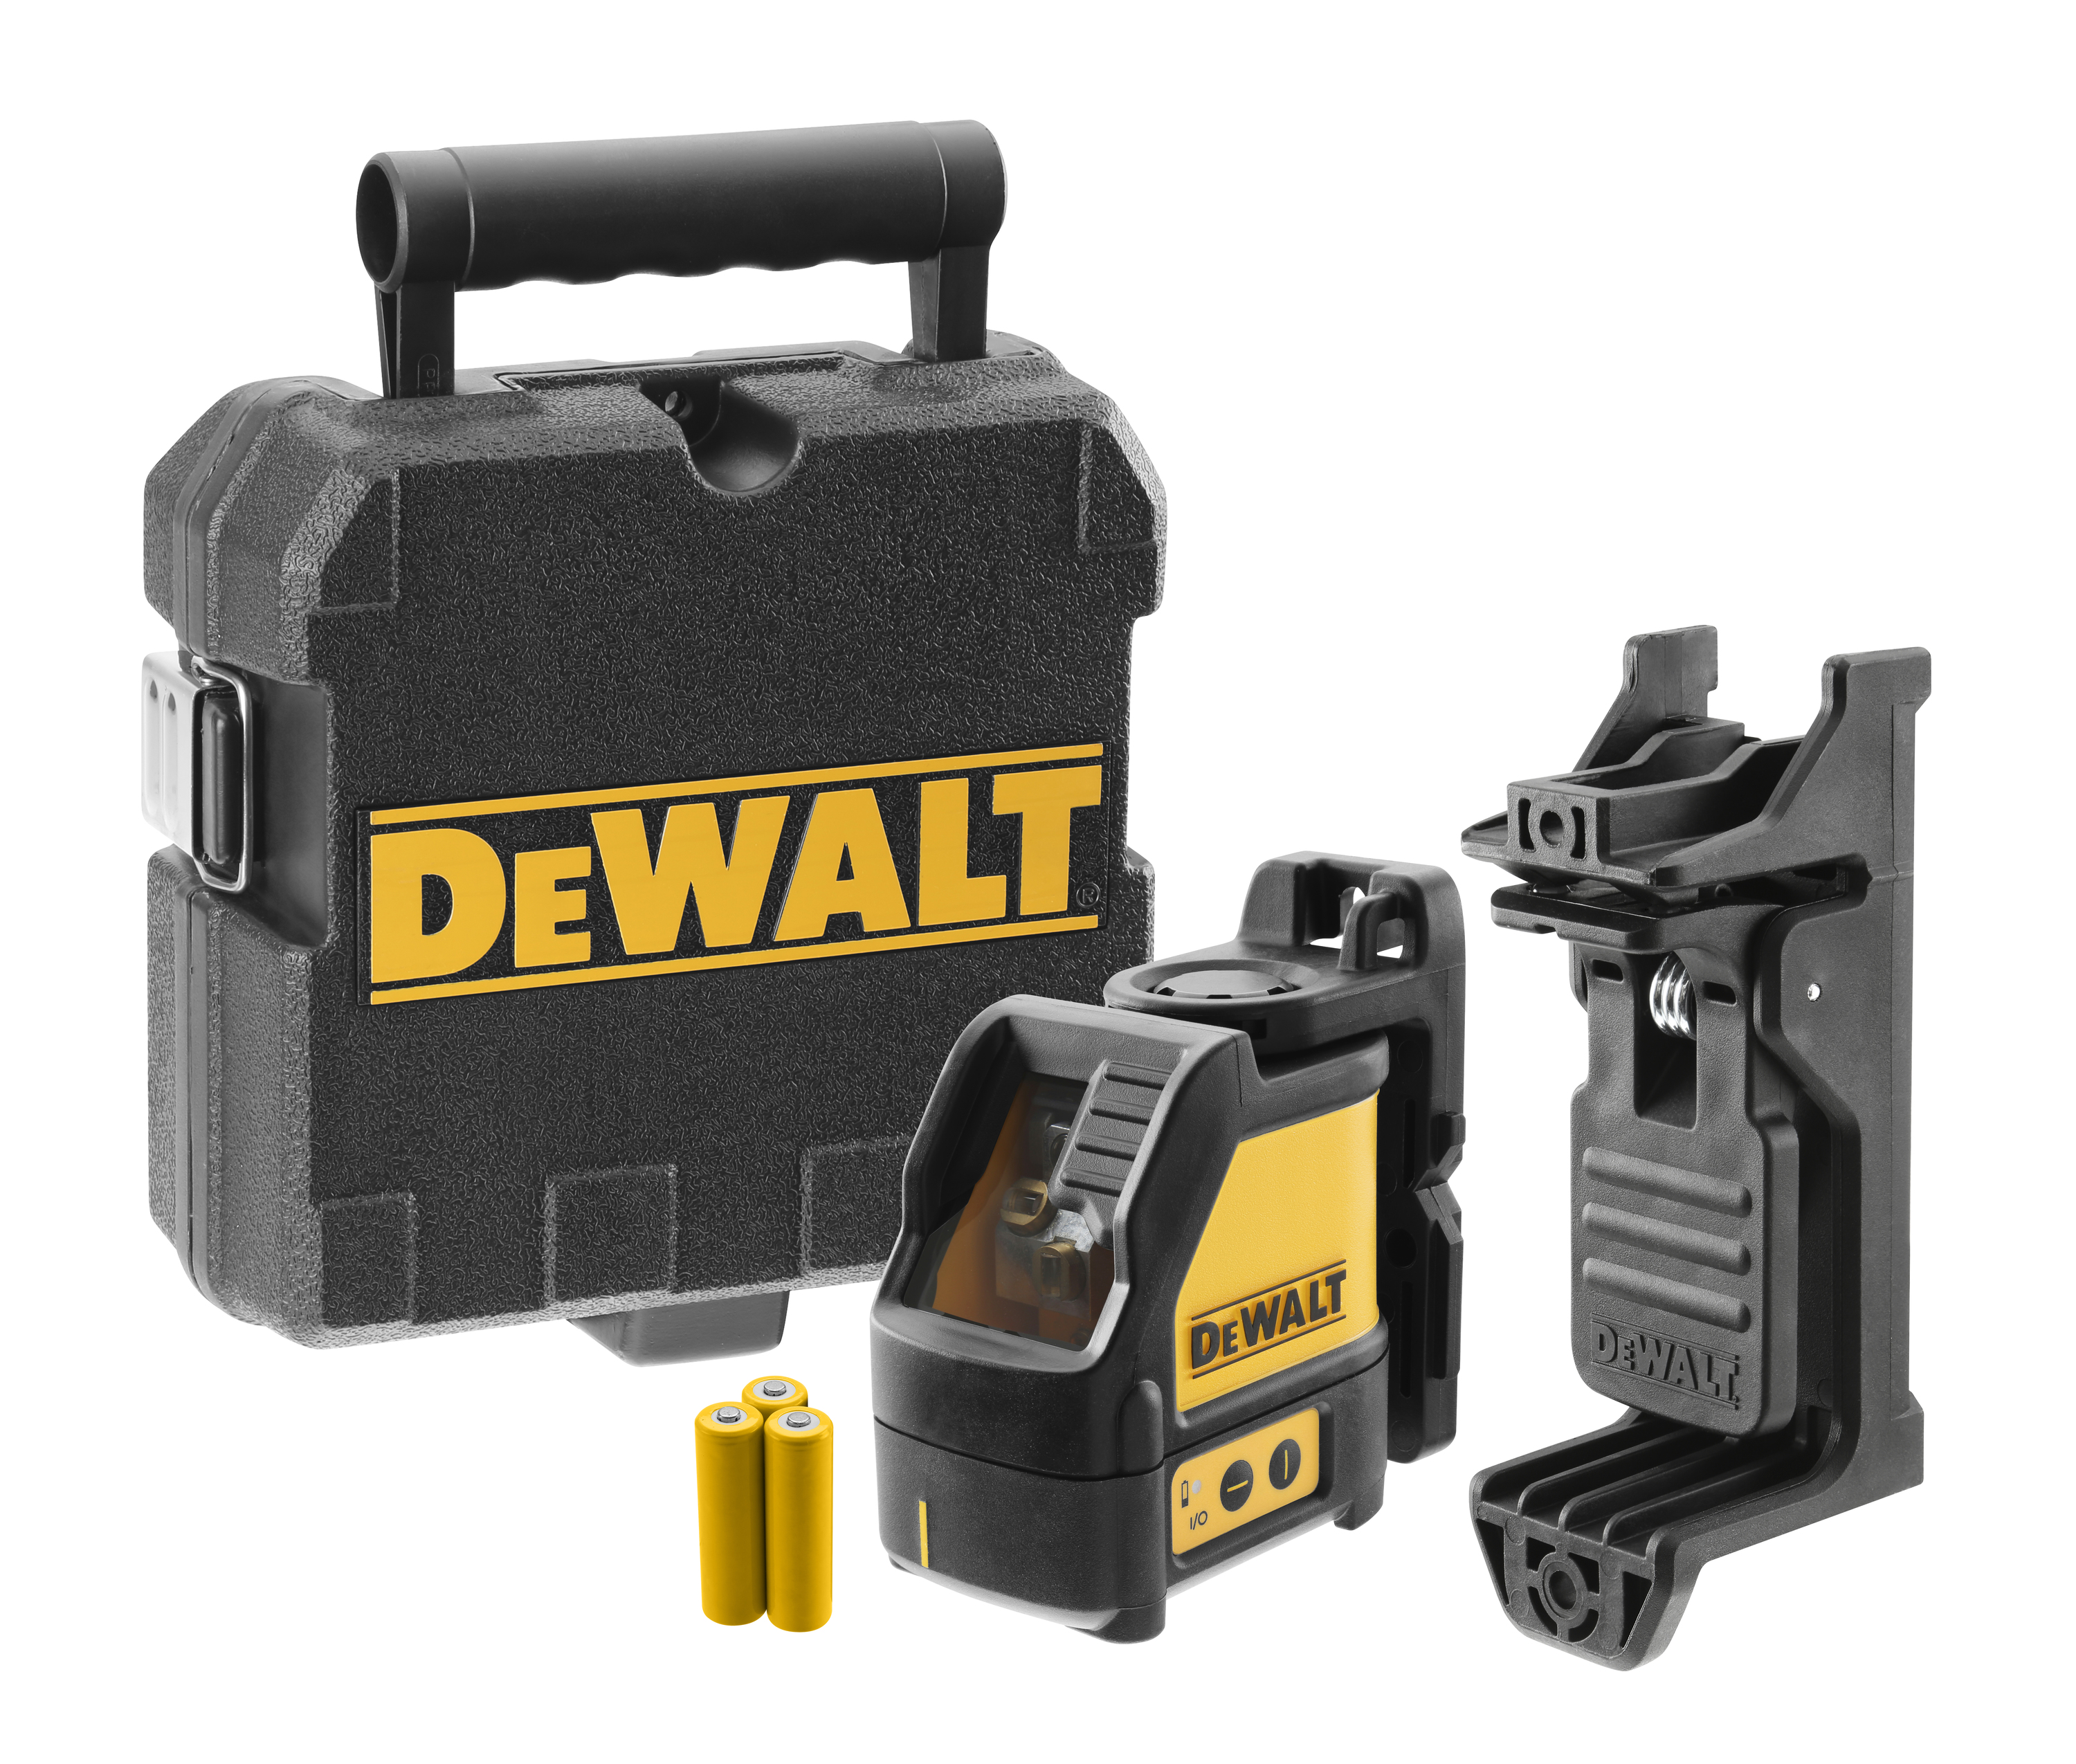 **Sale! Add to cart, save 15% more  - DeWALT® DW088K Self-Leveling Line Laser, +/-0.3 mm/m Accuracy, +/-4 deg Auto Leveling, 2 Beams